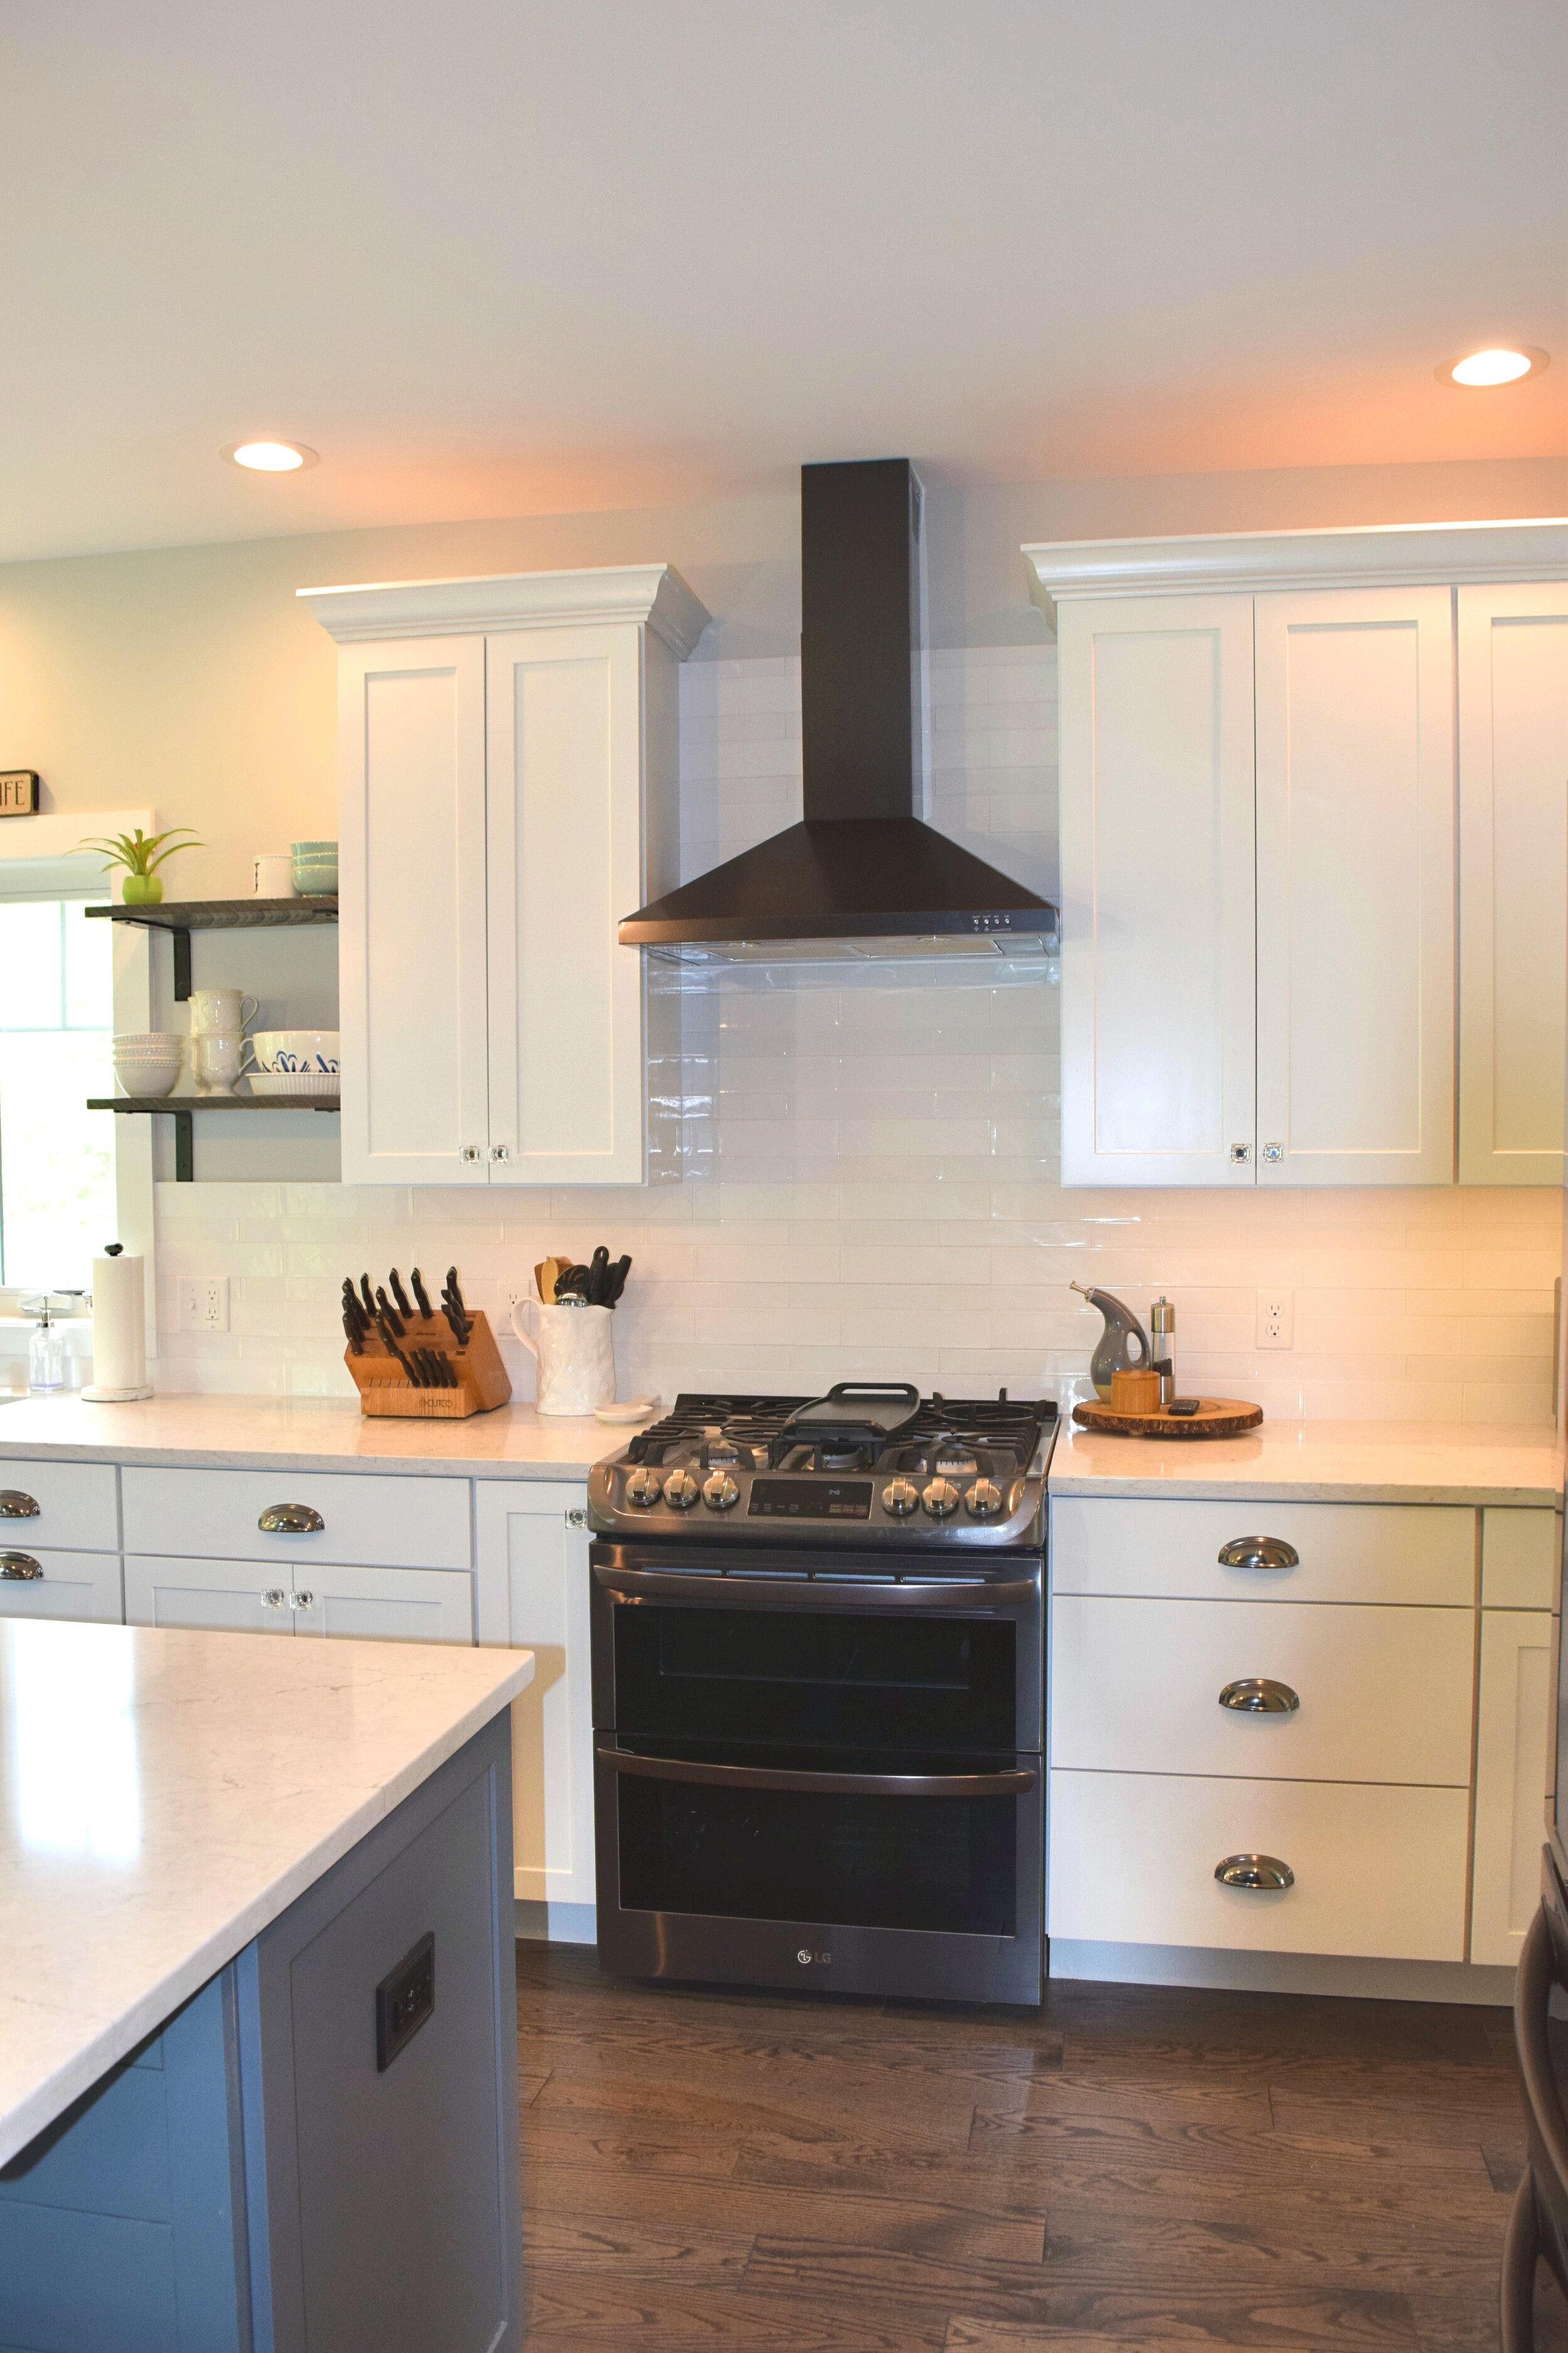 Stock Semi Custom And Custom Cabinetry Which Works For My Project Apuzzo Kitchens Custom Kitchen Cabinets Design